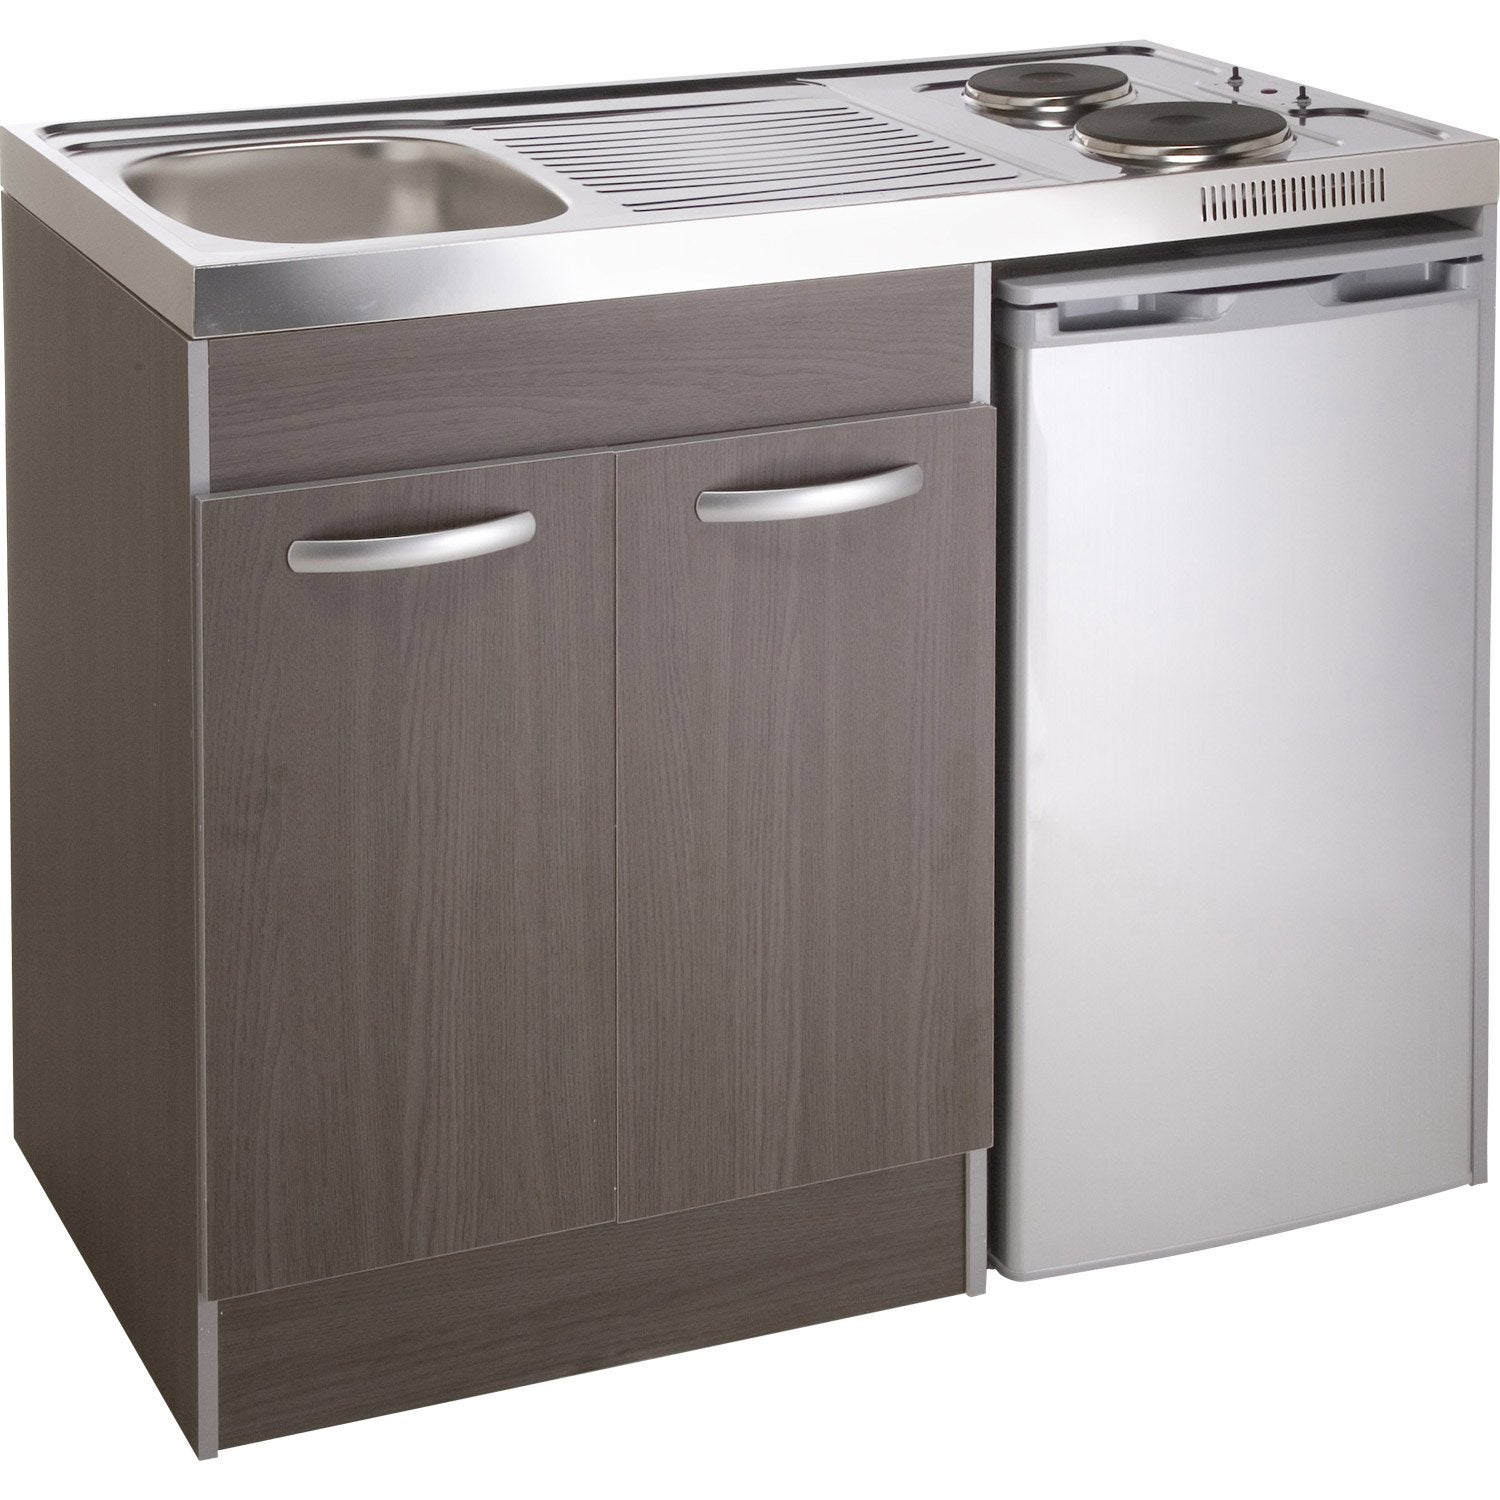 Kitchenette electrique imitation ch ne galiano spring - Poubelle sous evier leroy merlin ...